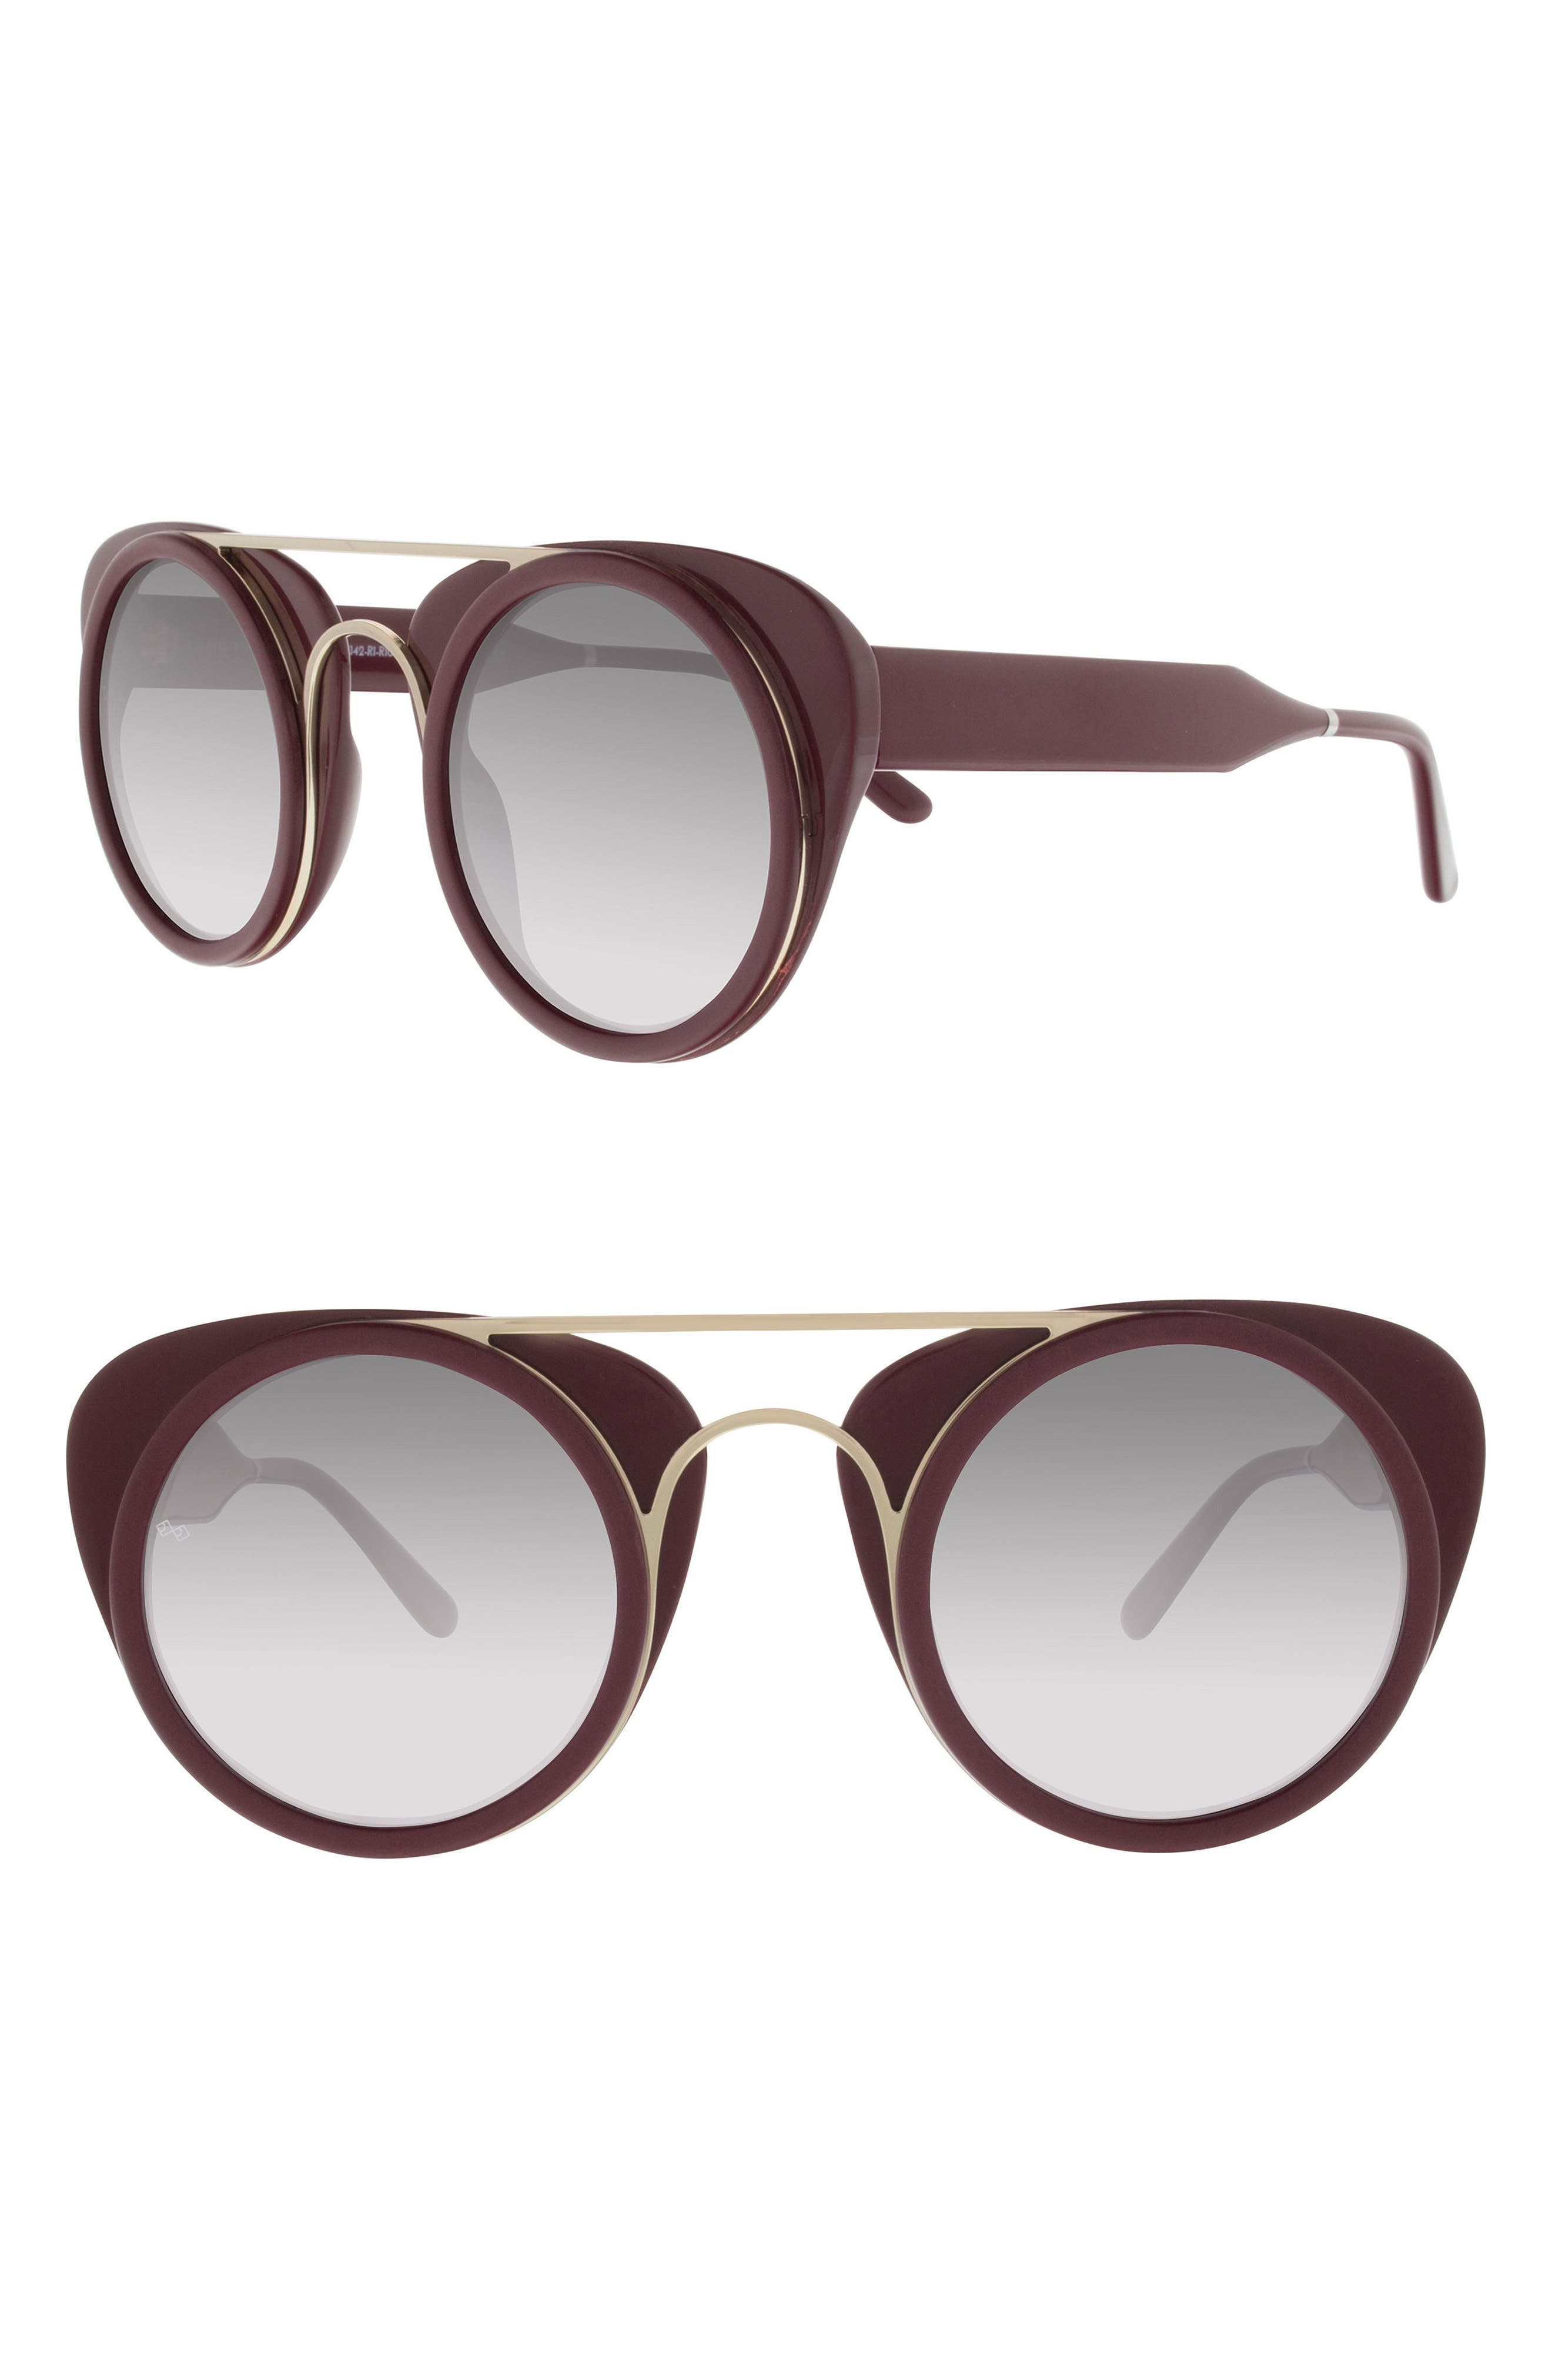 SMOKE X MIRRORS SODA POP 3 47MM ROUND SUNGLASSES - BURGUNDY/ BURGUNDY/ GOLD